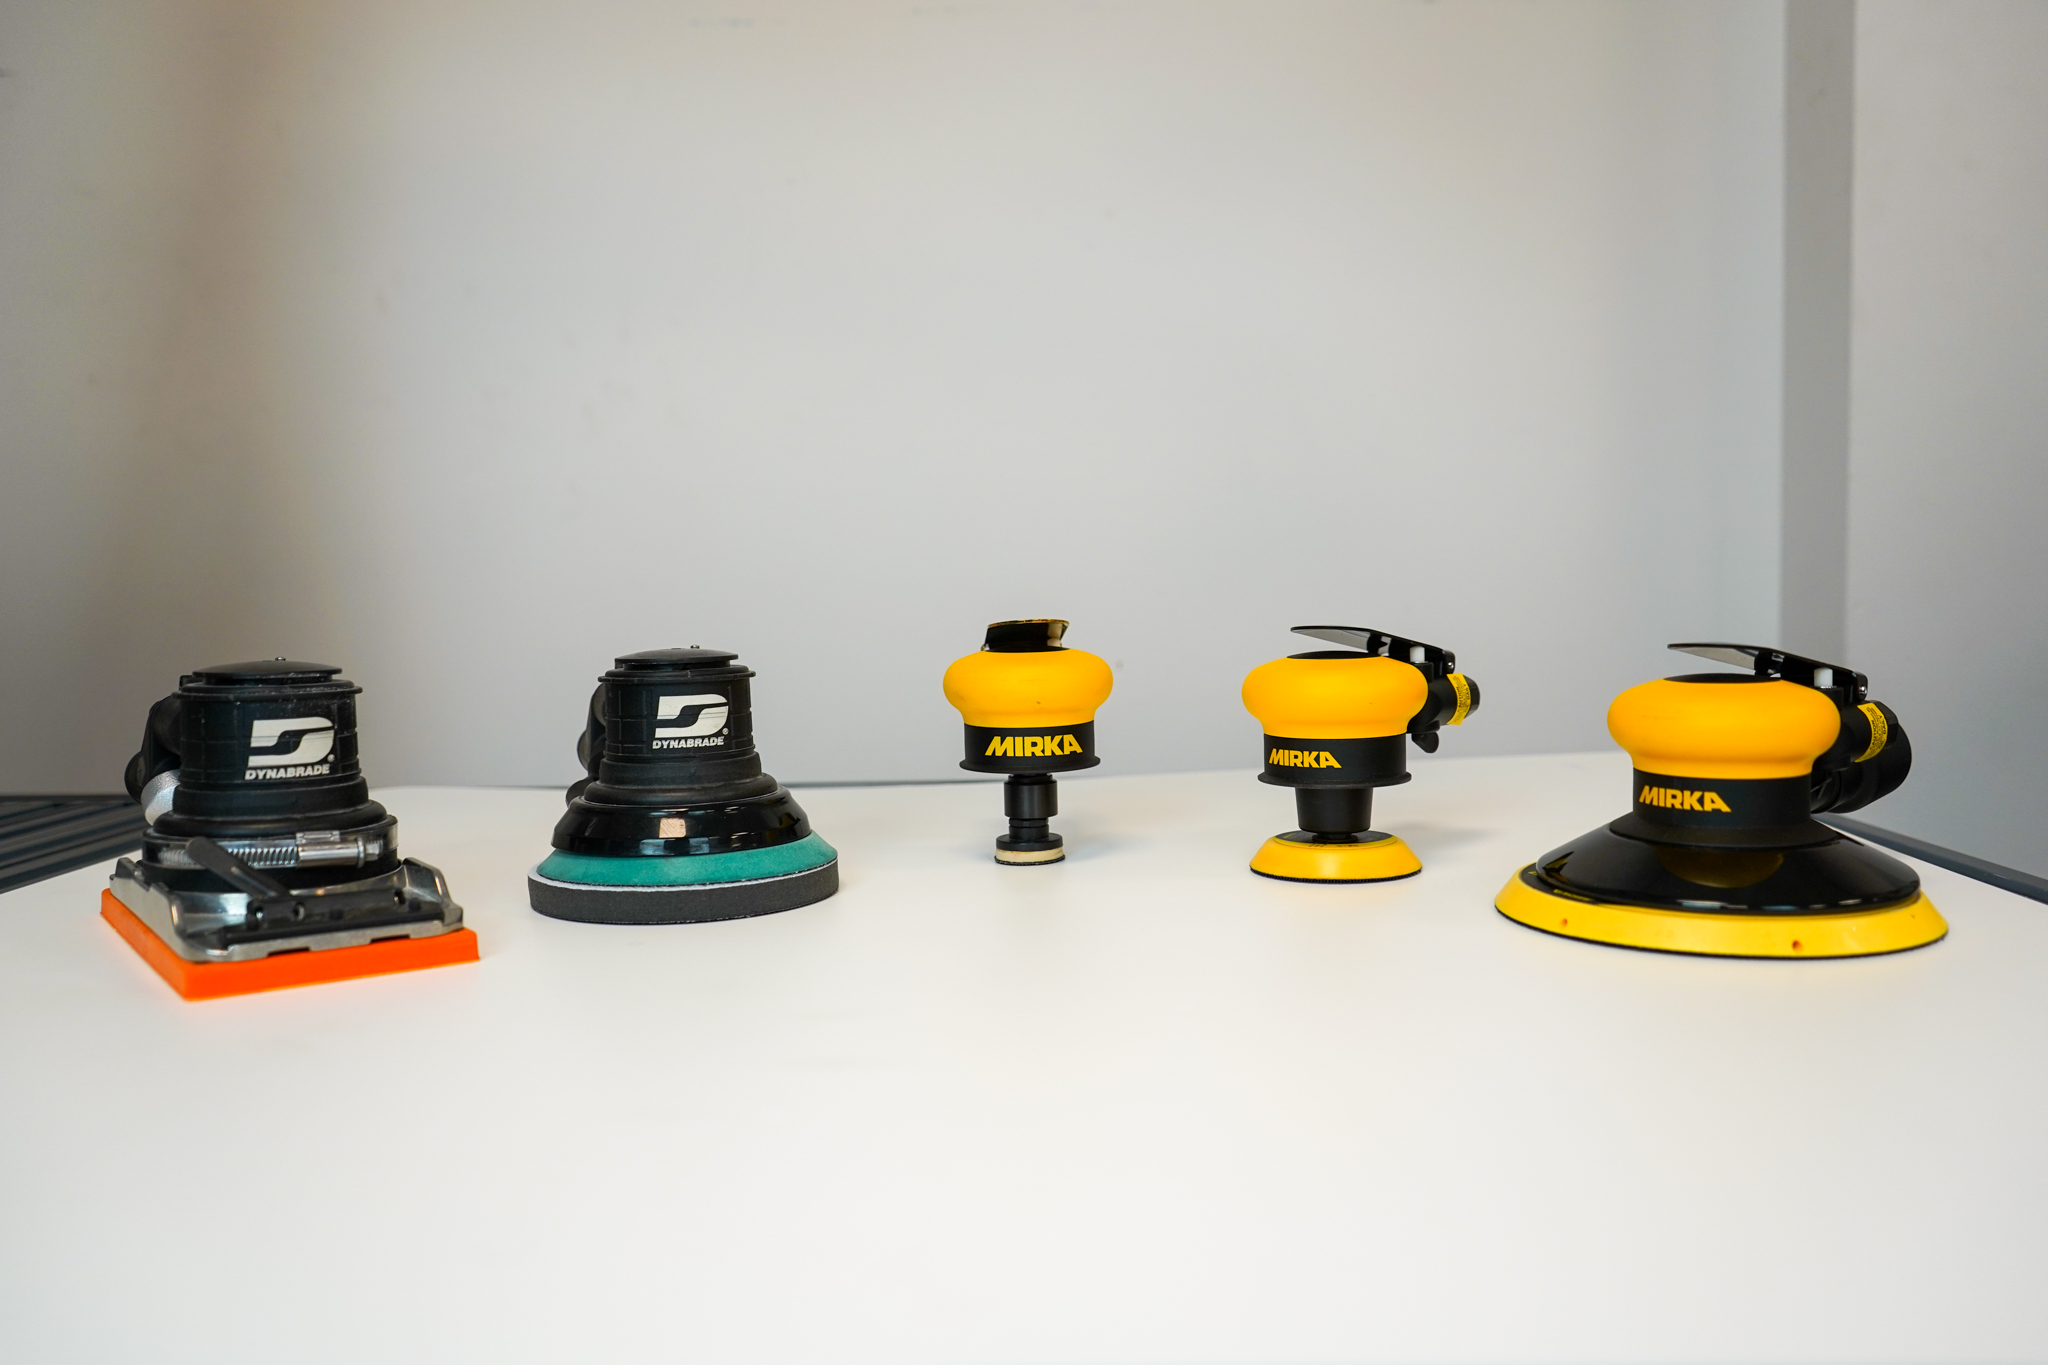 Sanding Tools: 7 Steps to Pick the Best Tool for a Robot